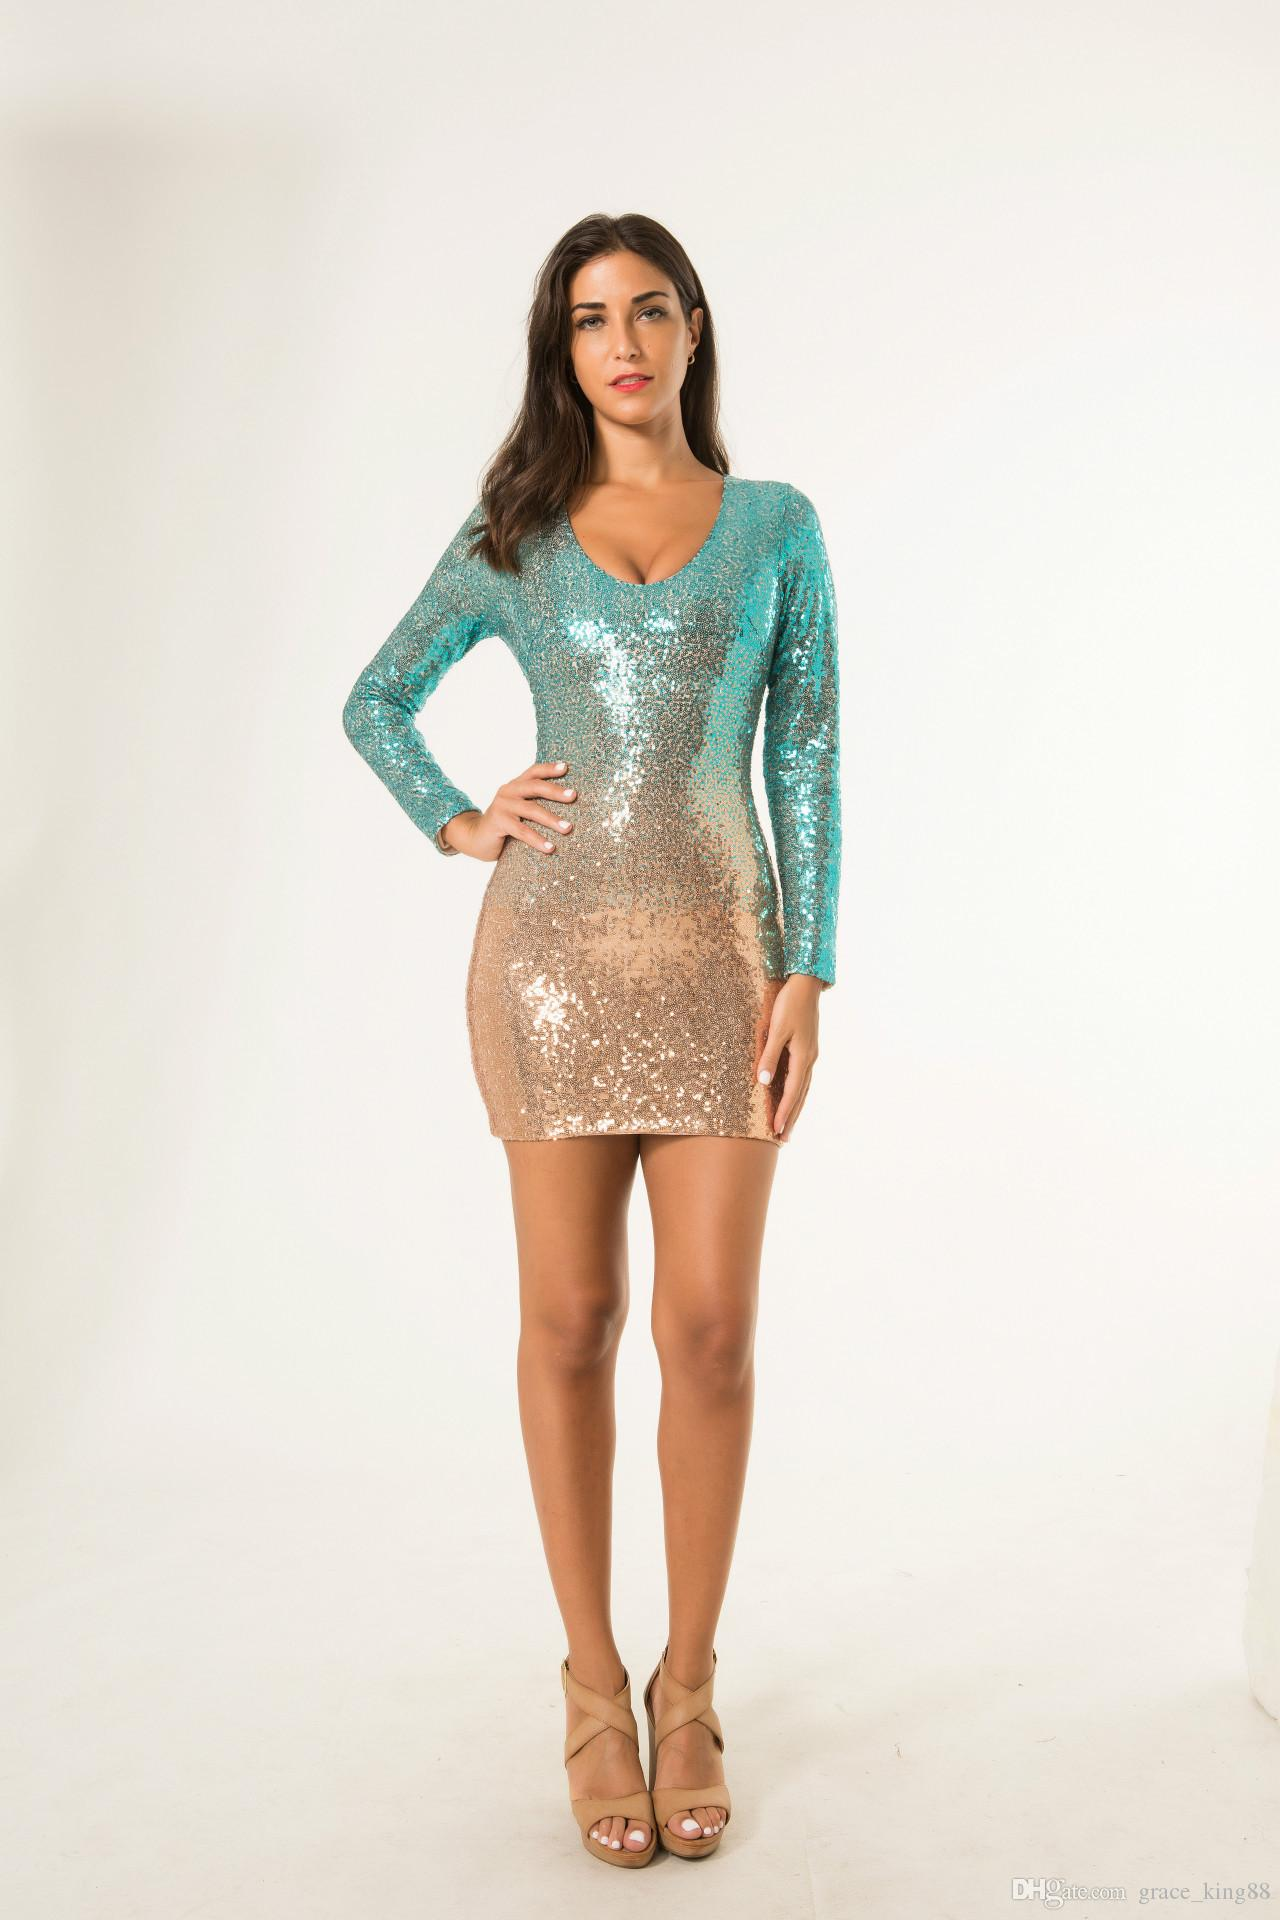 2019 Autumn New Elegant Women'S Sexy Sequin Dress Fashion Party Dresses  Backless Bodycon Sequin Christmas Dress New Year Dress S M L XL From  Grace_king88, ...